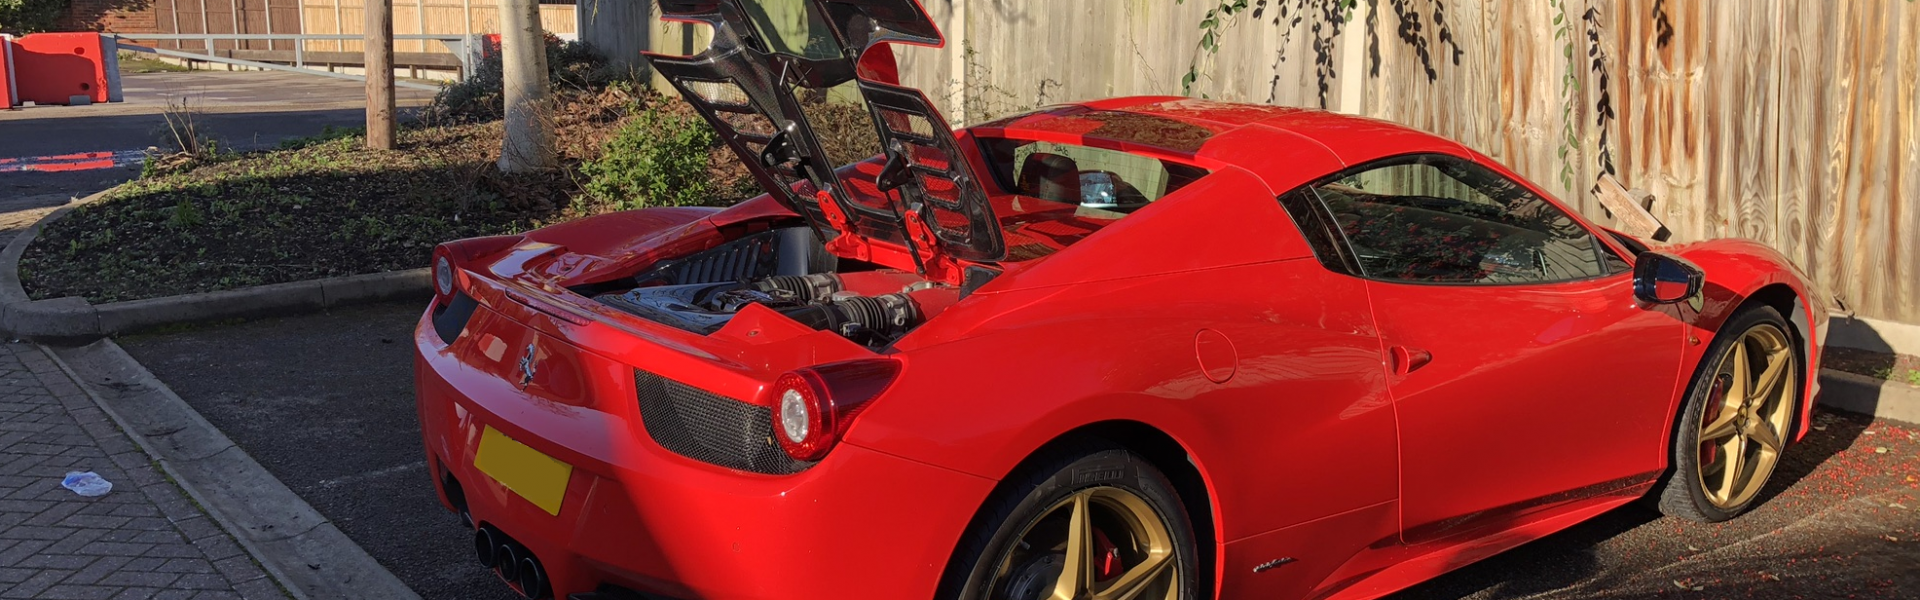 Ferrari 458 Spider Upgrades; Capristo Carbon Fibre Glass Engine Cover & Engine Bay Carbon